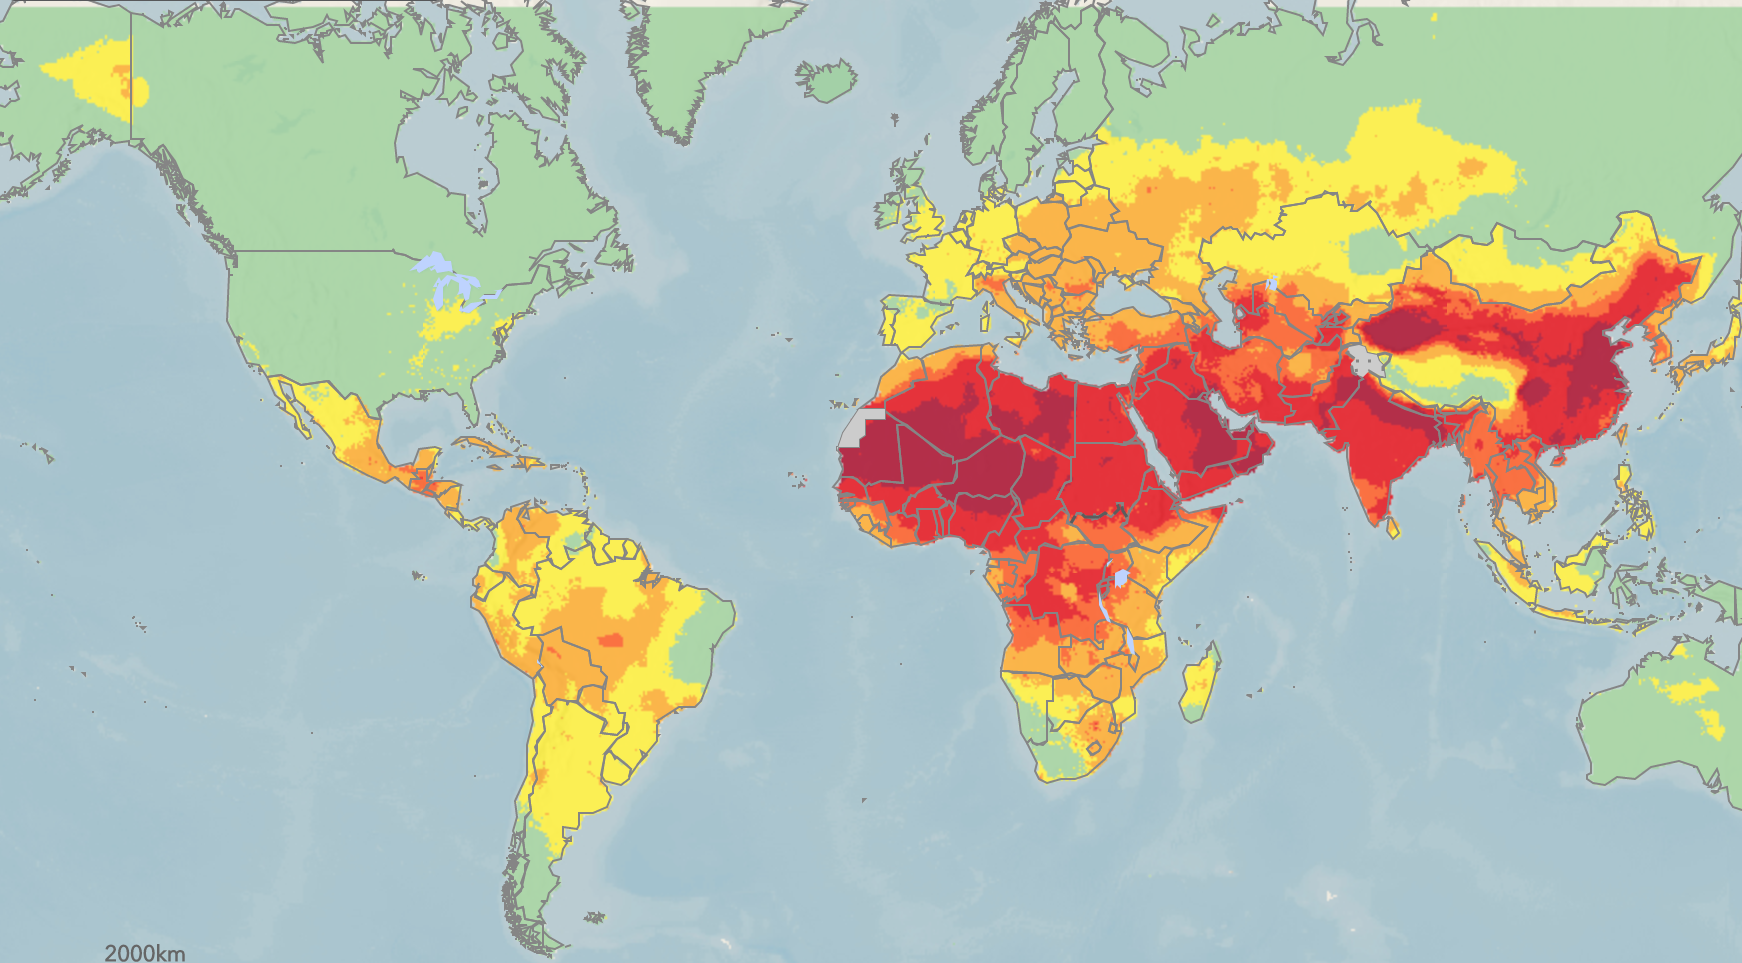 https://www.science20.com/files/images/whopm2.5airpollutionmap.png